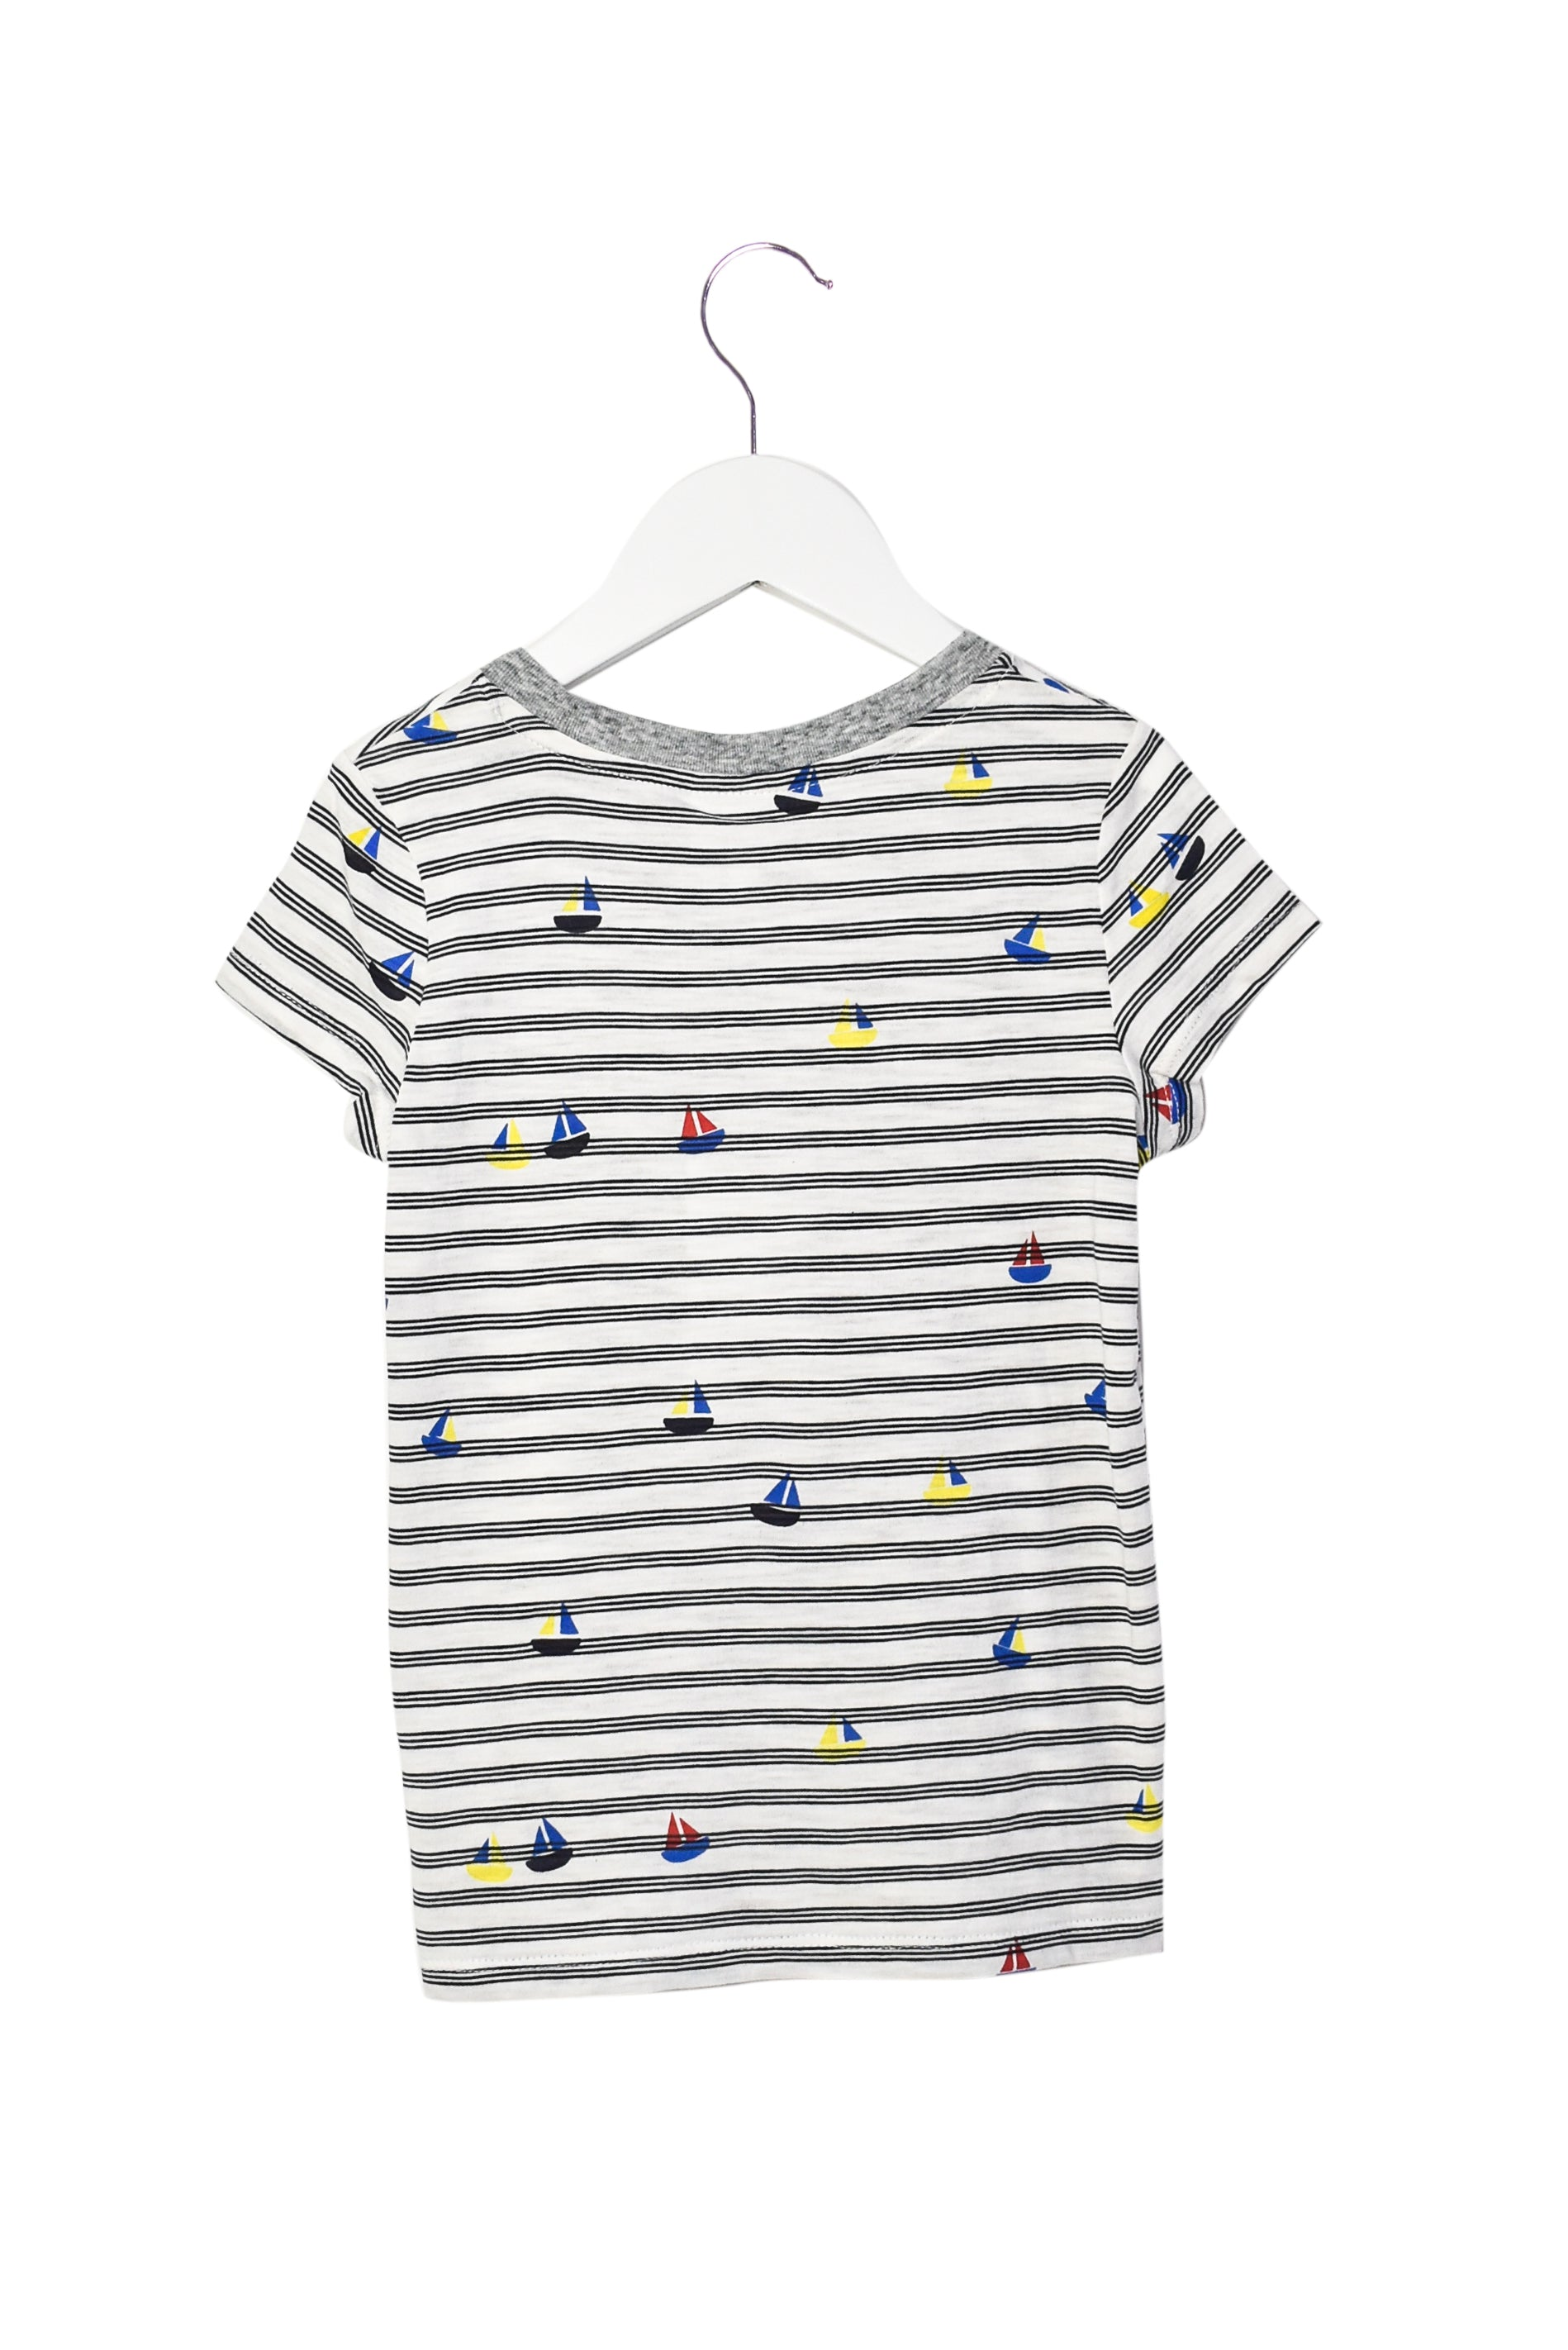 10006499 Seed Kids~T-shirt 3-4T at Retykle